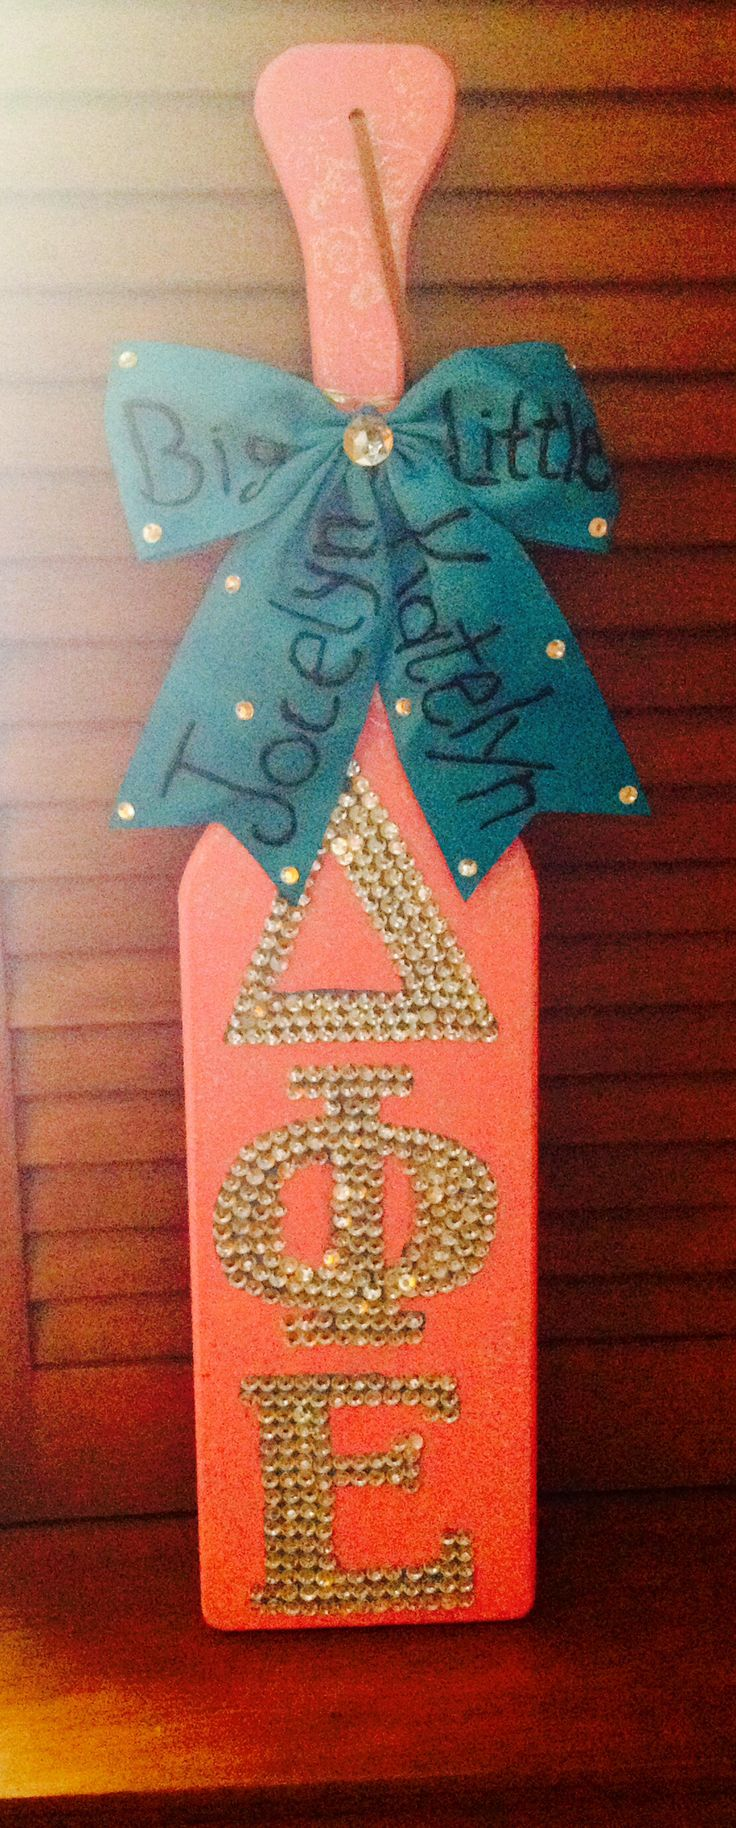 Delta phi epsilon paddle  One of my sisters made this!!! Yay for a crafty Alpha class!